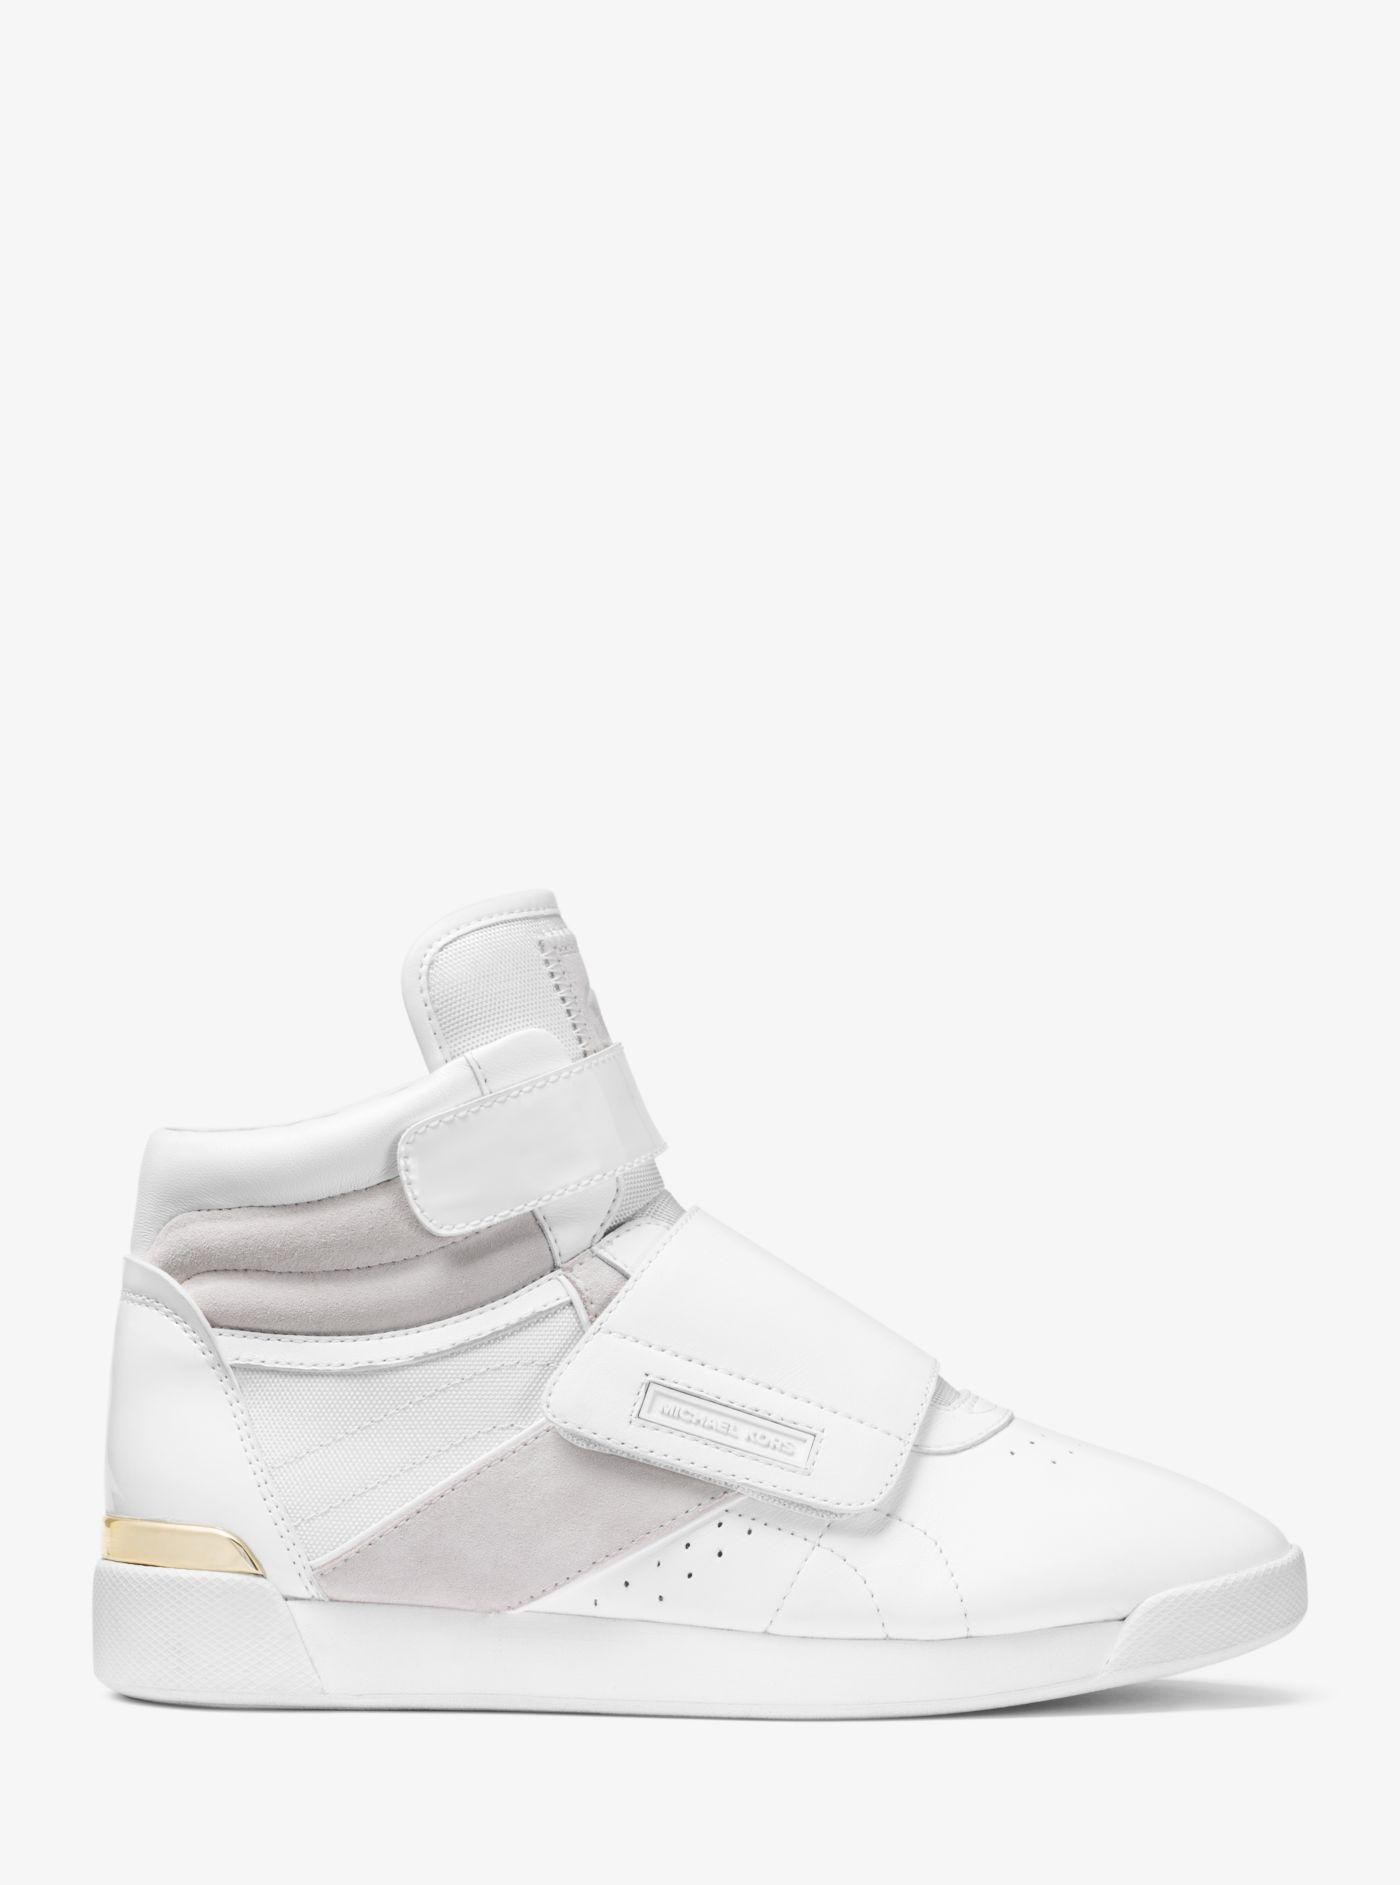 0256c10cfe5 Michael Kors White Addie Leather And Canvas High-top Trainer